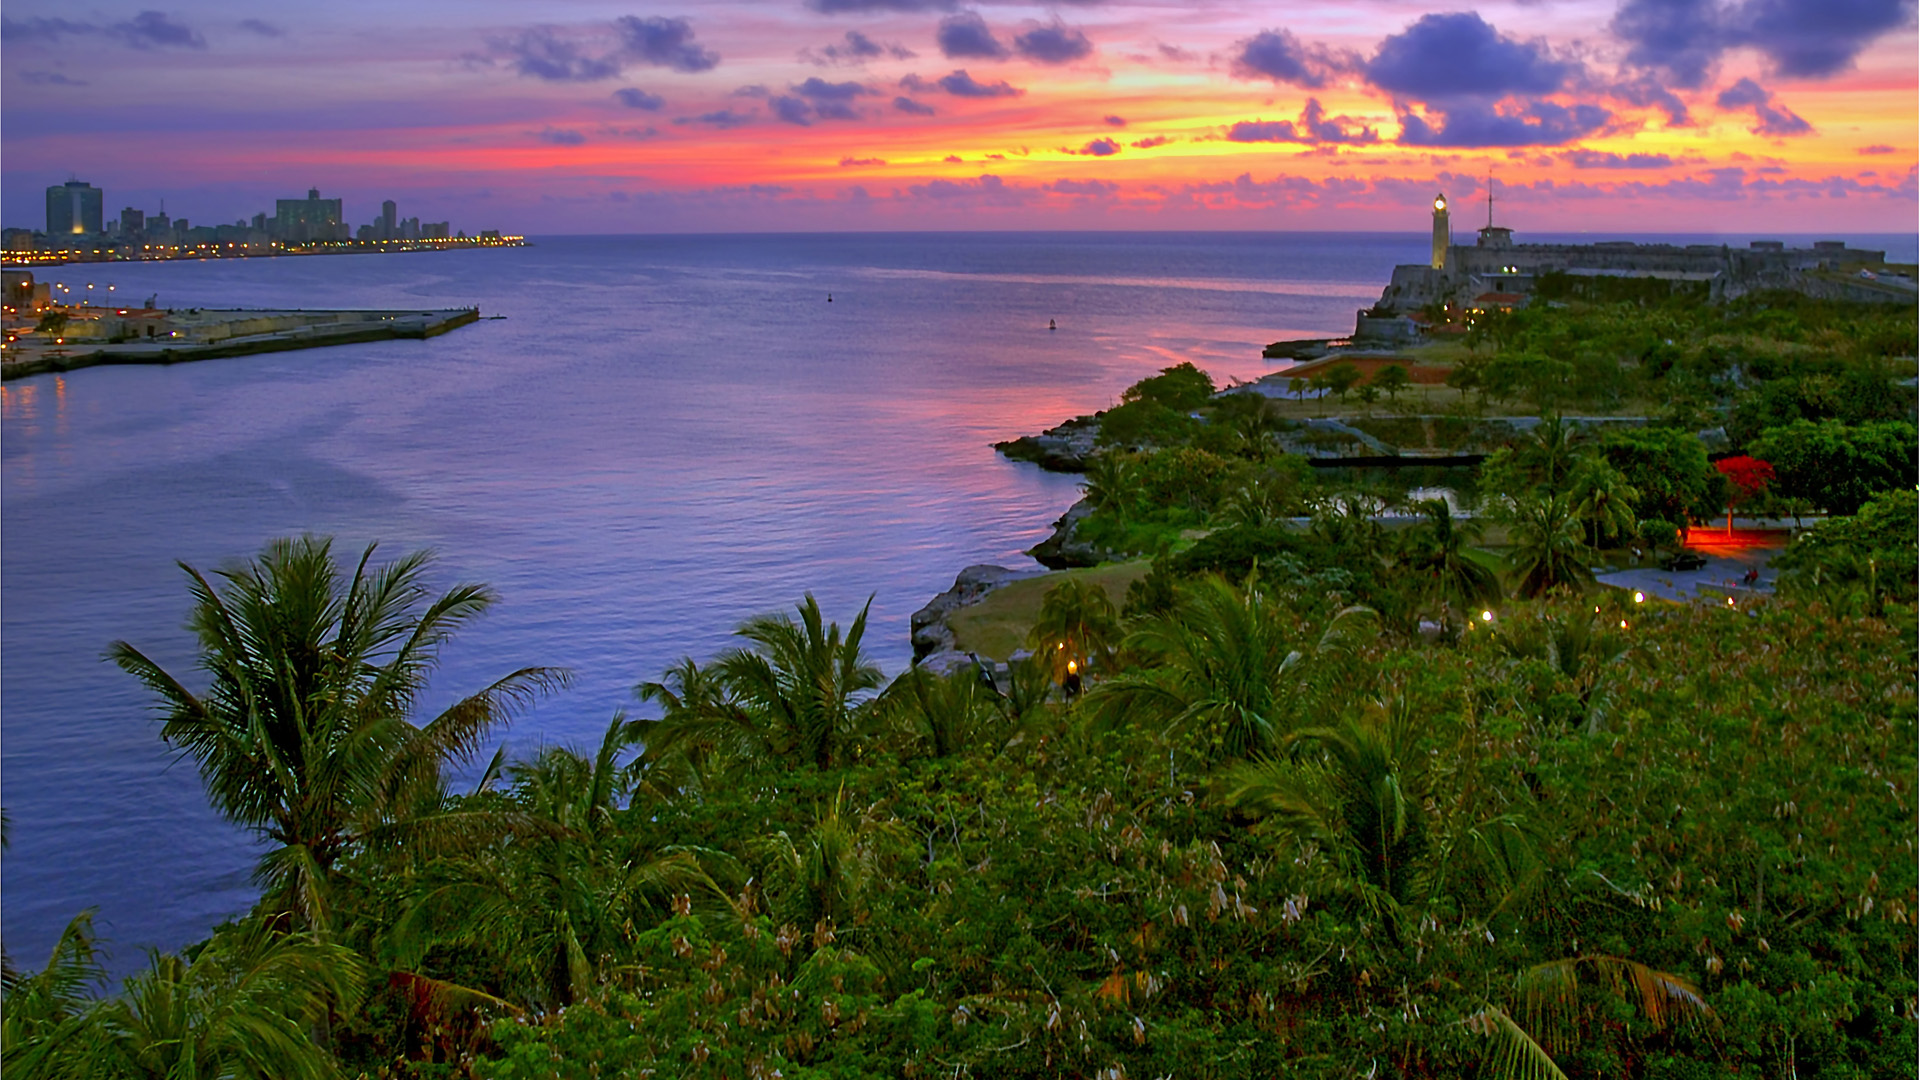 Cuba. Morro Castle and entrance to Havana Bay, seen from the La Cabaña at dusk. Beautiful tropical garden in the foreground.